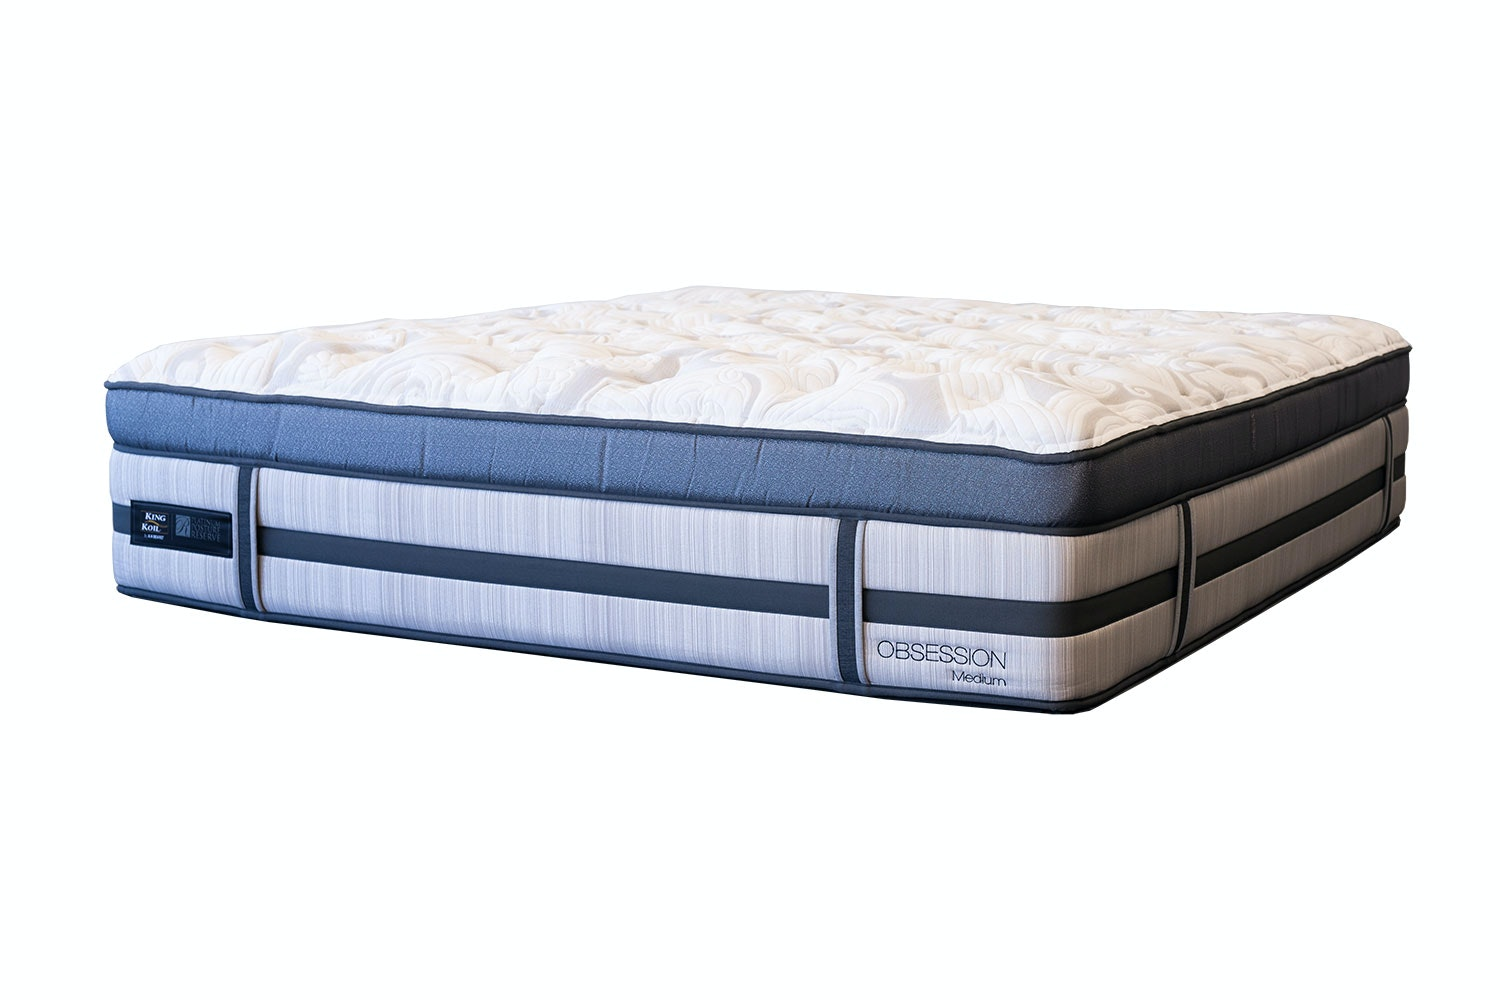 Obsession Medium King Mattress by King Koil